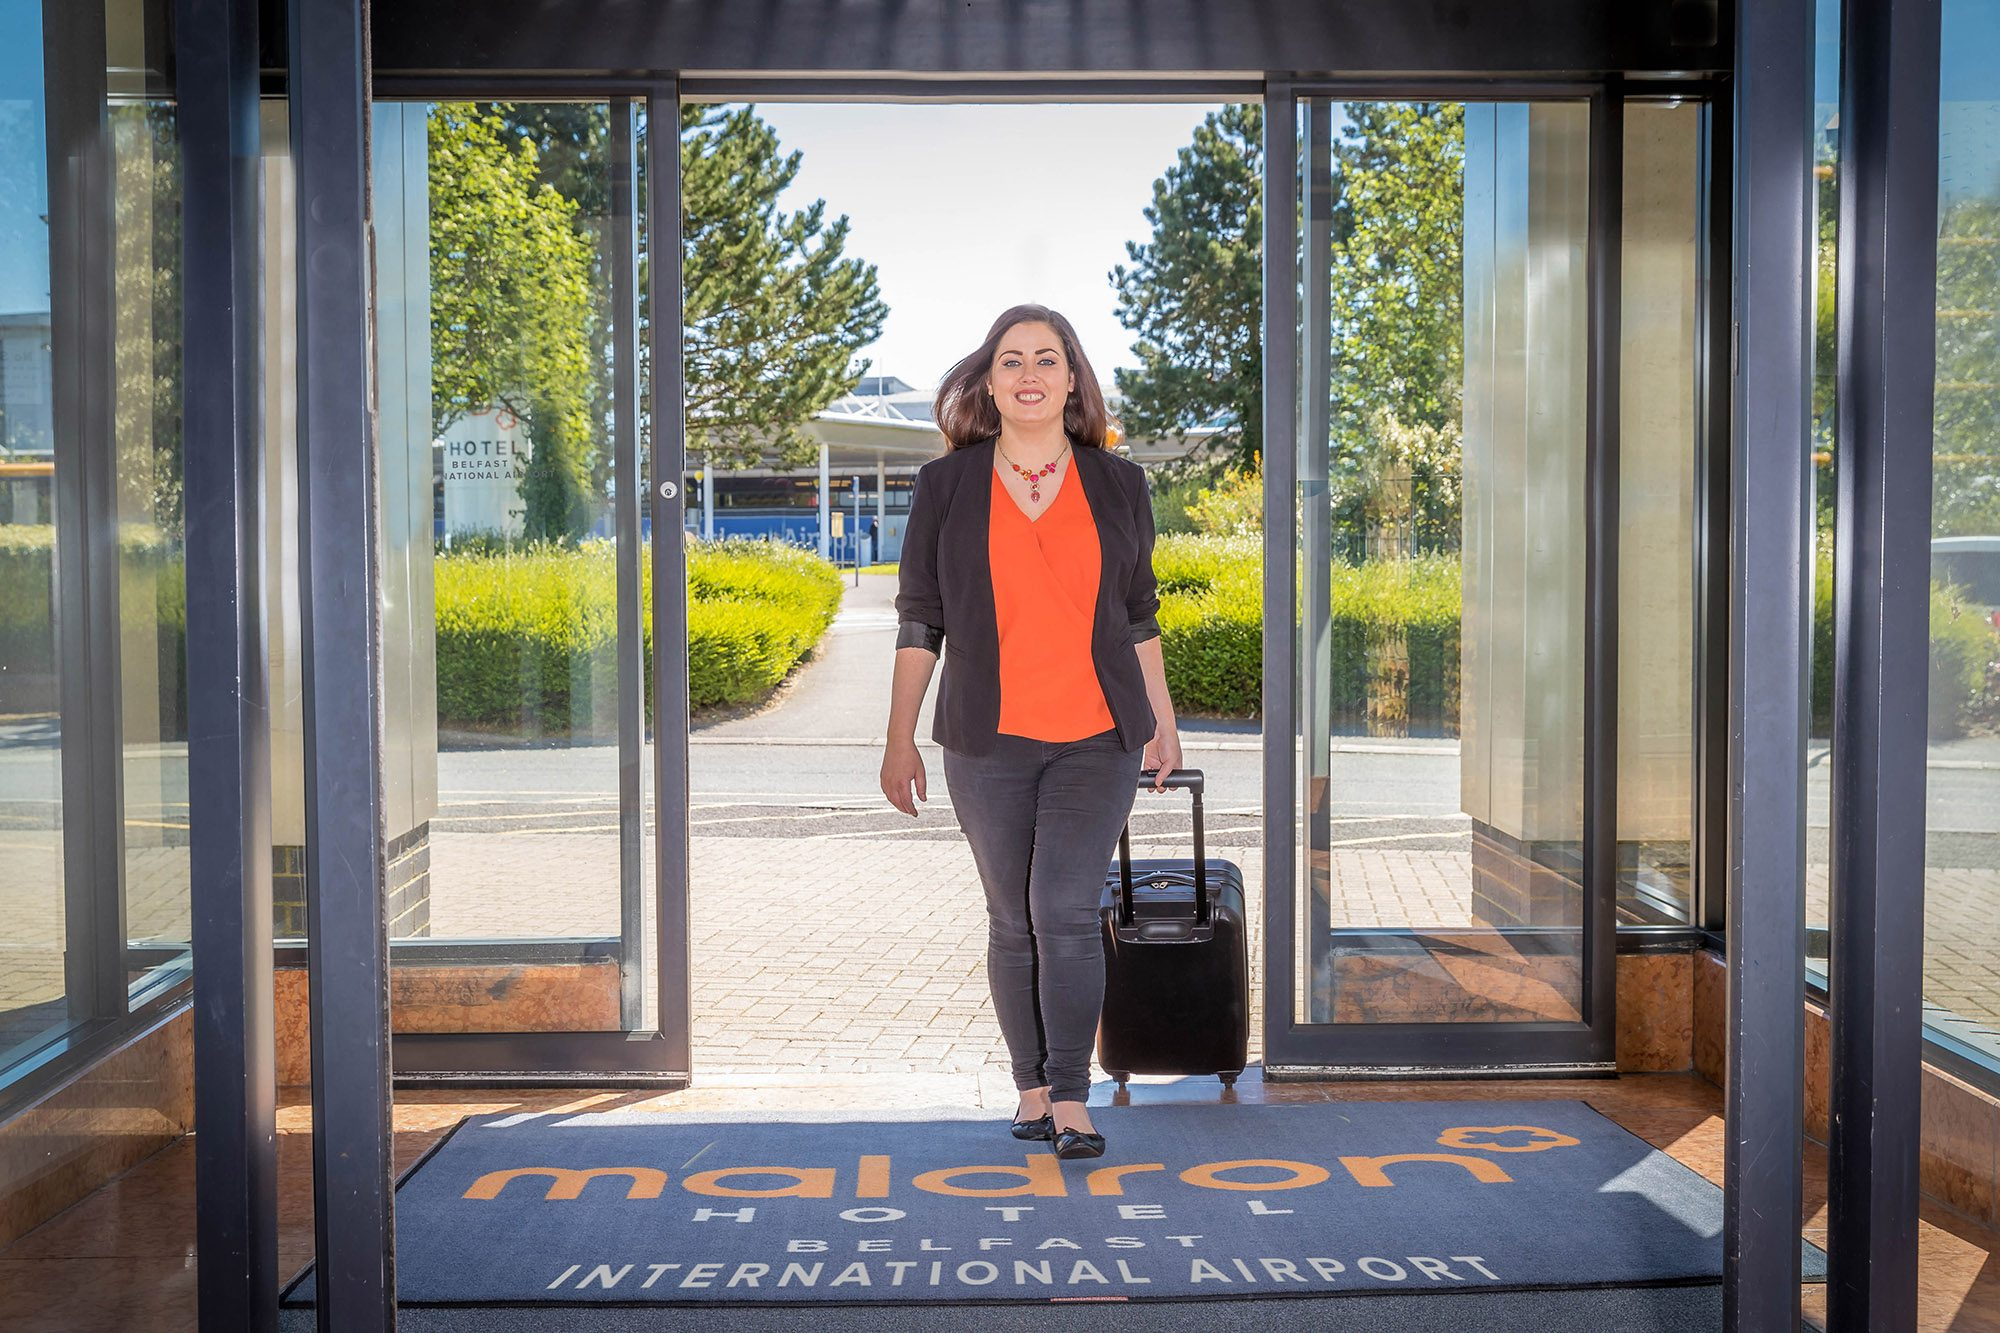 Entrance-Maldron-Hotel-Belfast-International-Airport